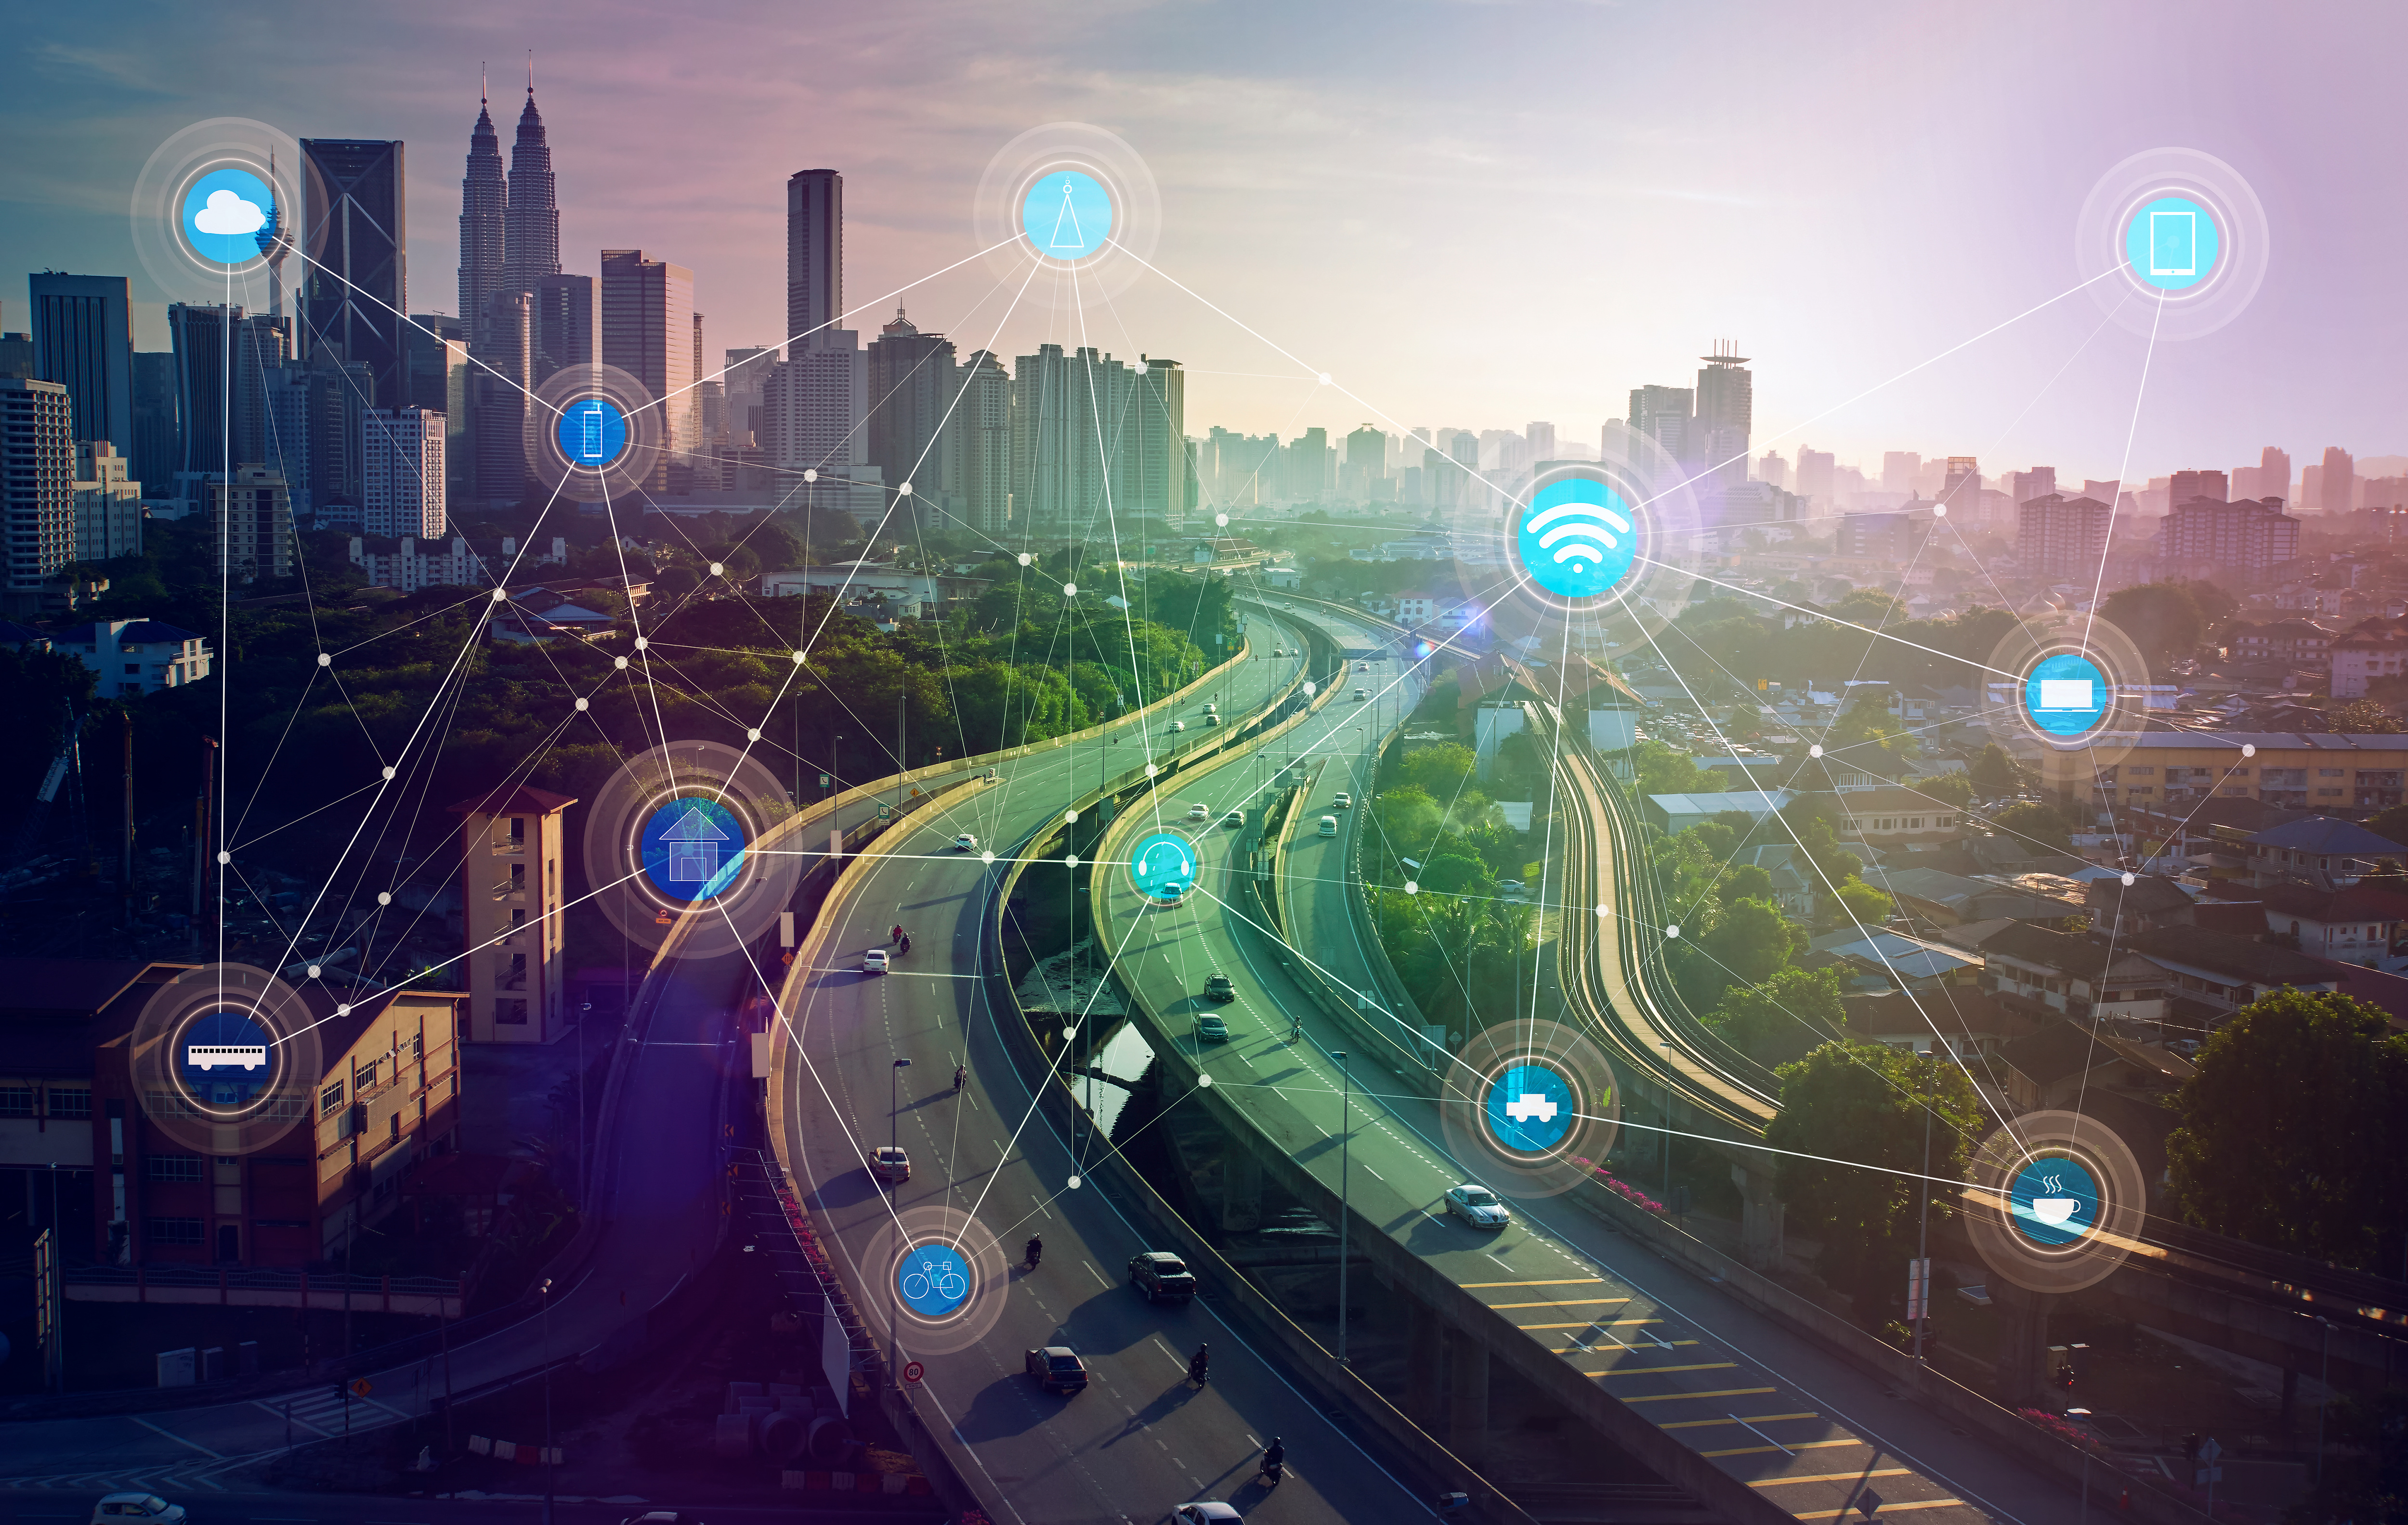 10 predictions for the Internet of Things and big data in 2018